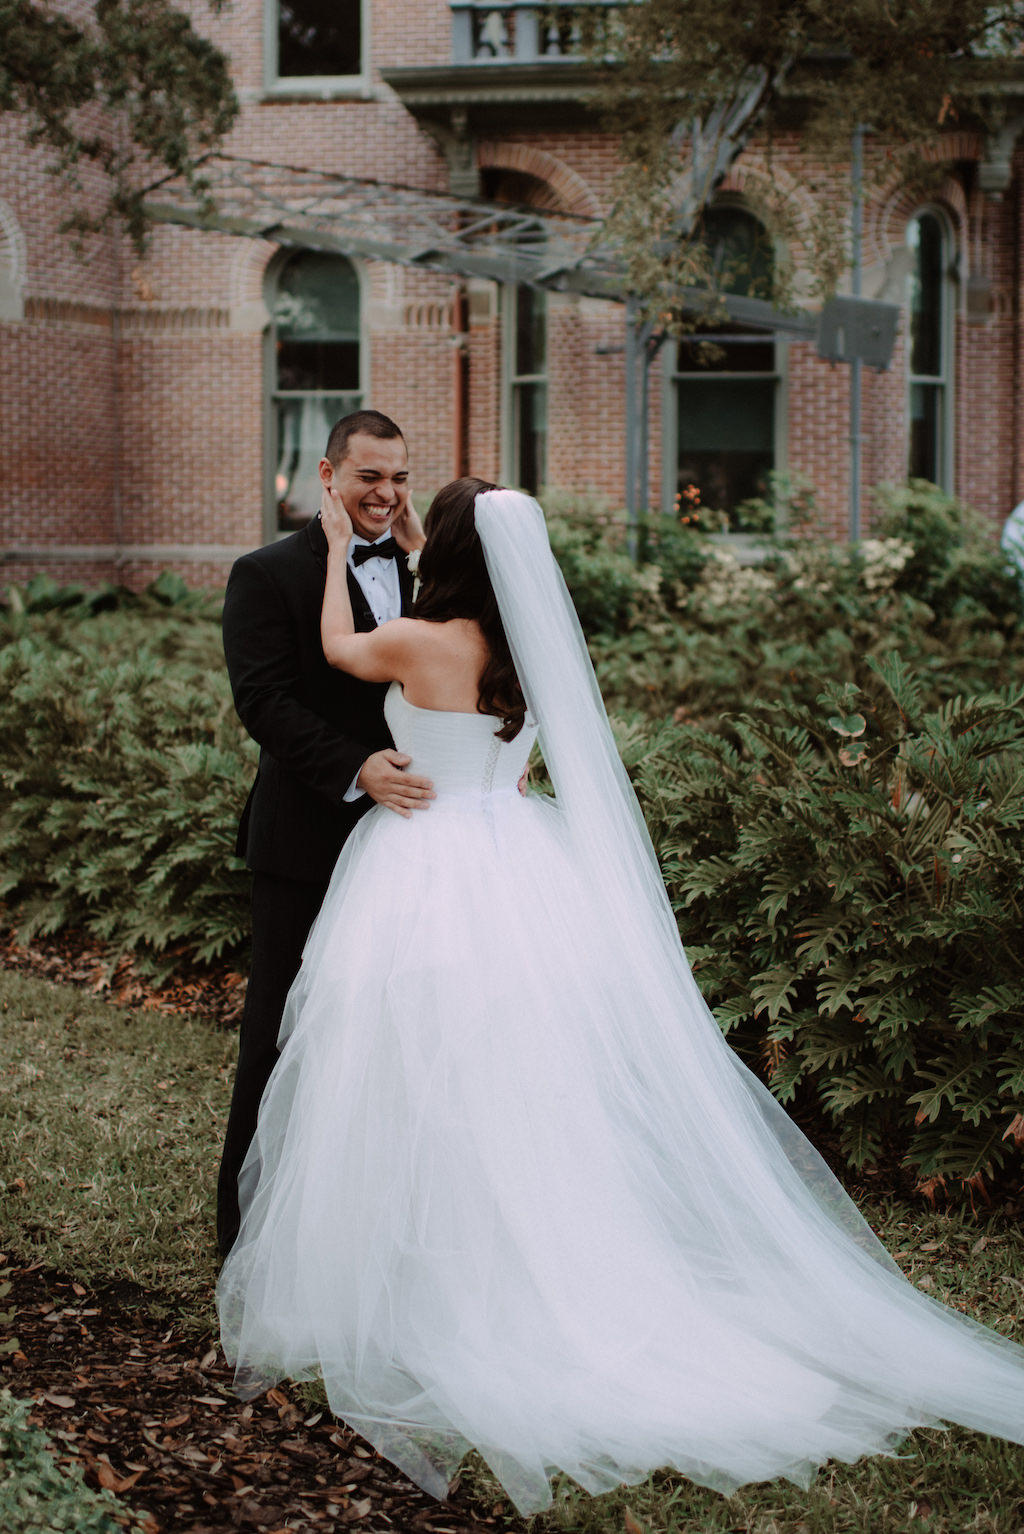 Outdoor Bride and Groom First Look Wedding Portrait, Groom in Black Tuxedo with Black Bowtie and White Rose Boutonniere, Bride in White Sweetheart Strapless Tulle Wedding Dress and Tulle Cathedral Length Veil | The University of Tampa